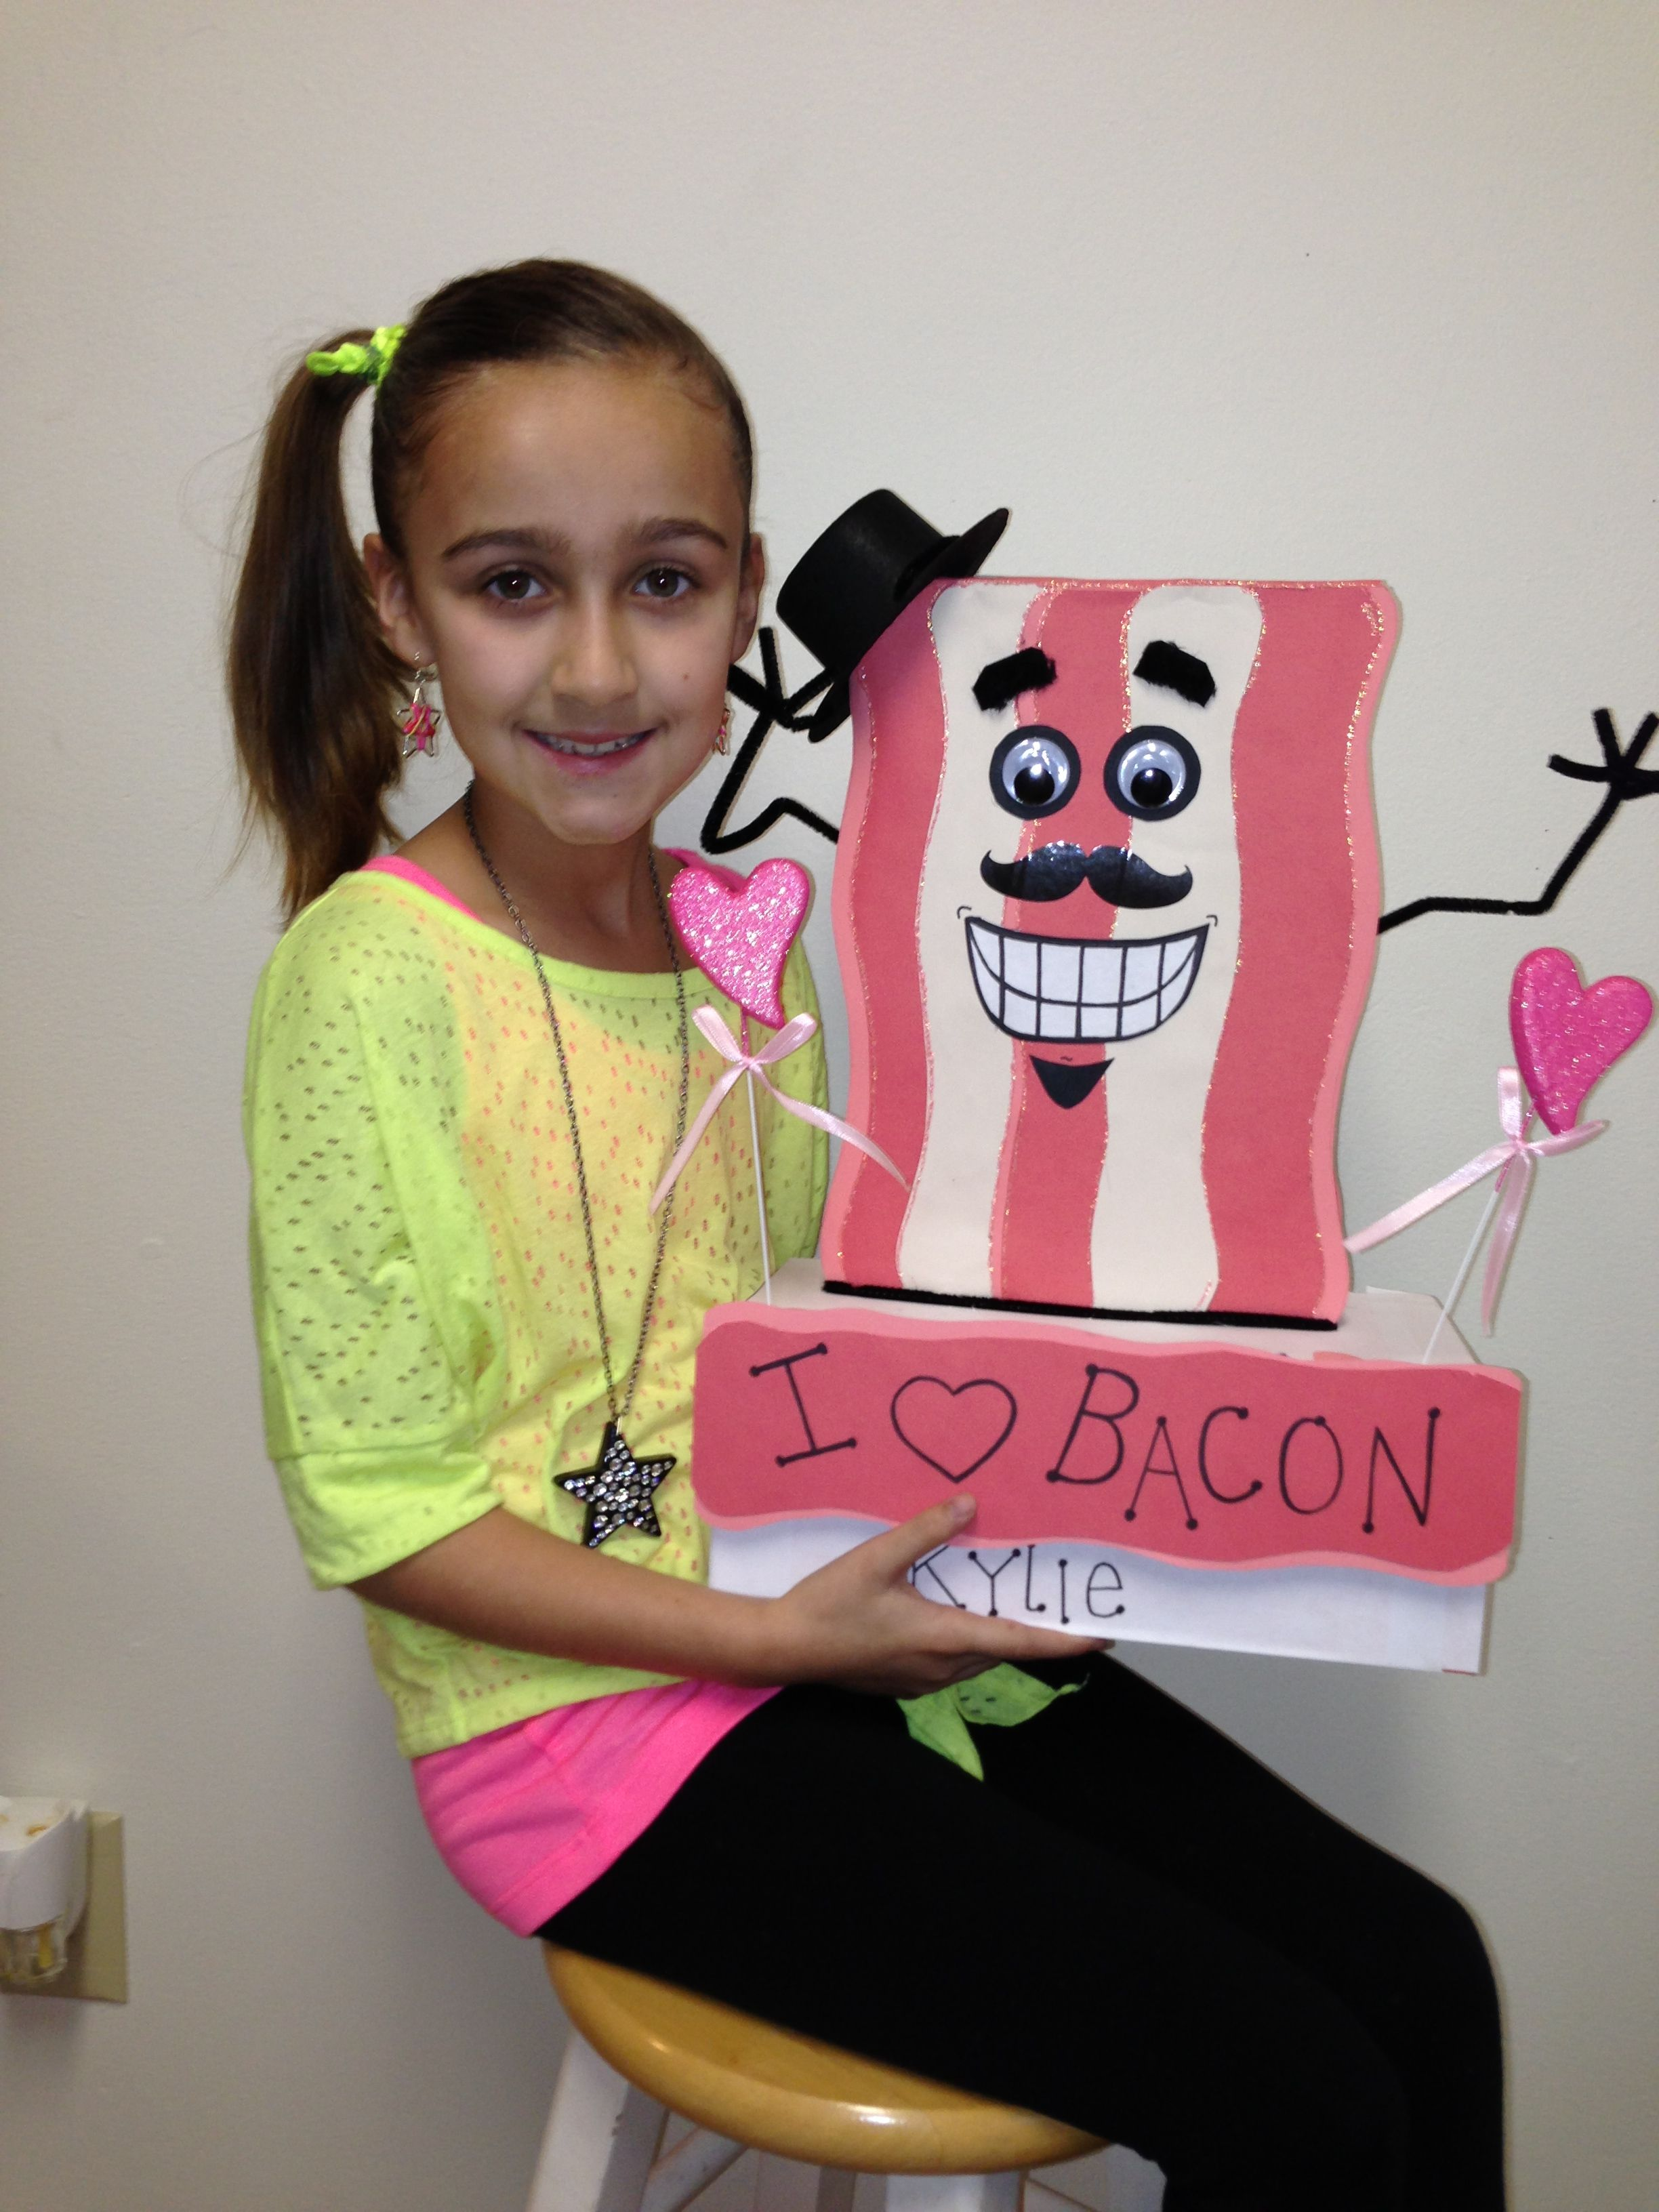 The original Bacon Valentines Day box, lol. The idea of a third grader.